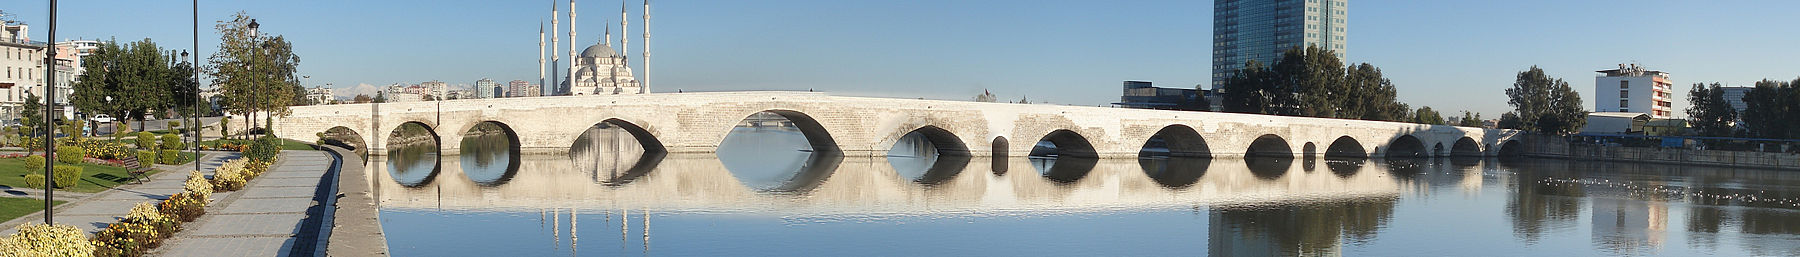 The Roman-era Stone Bridge spanning the Seyhan River